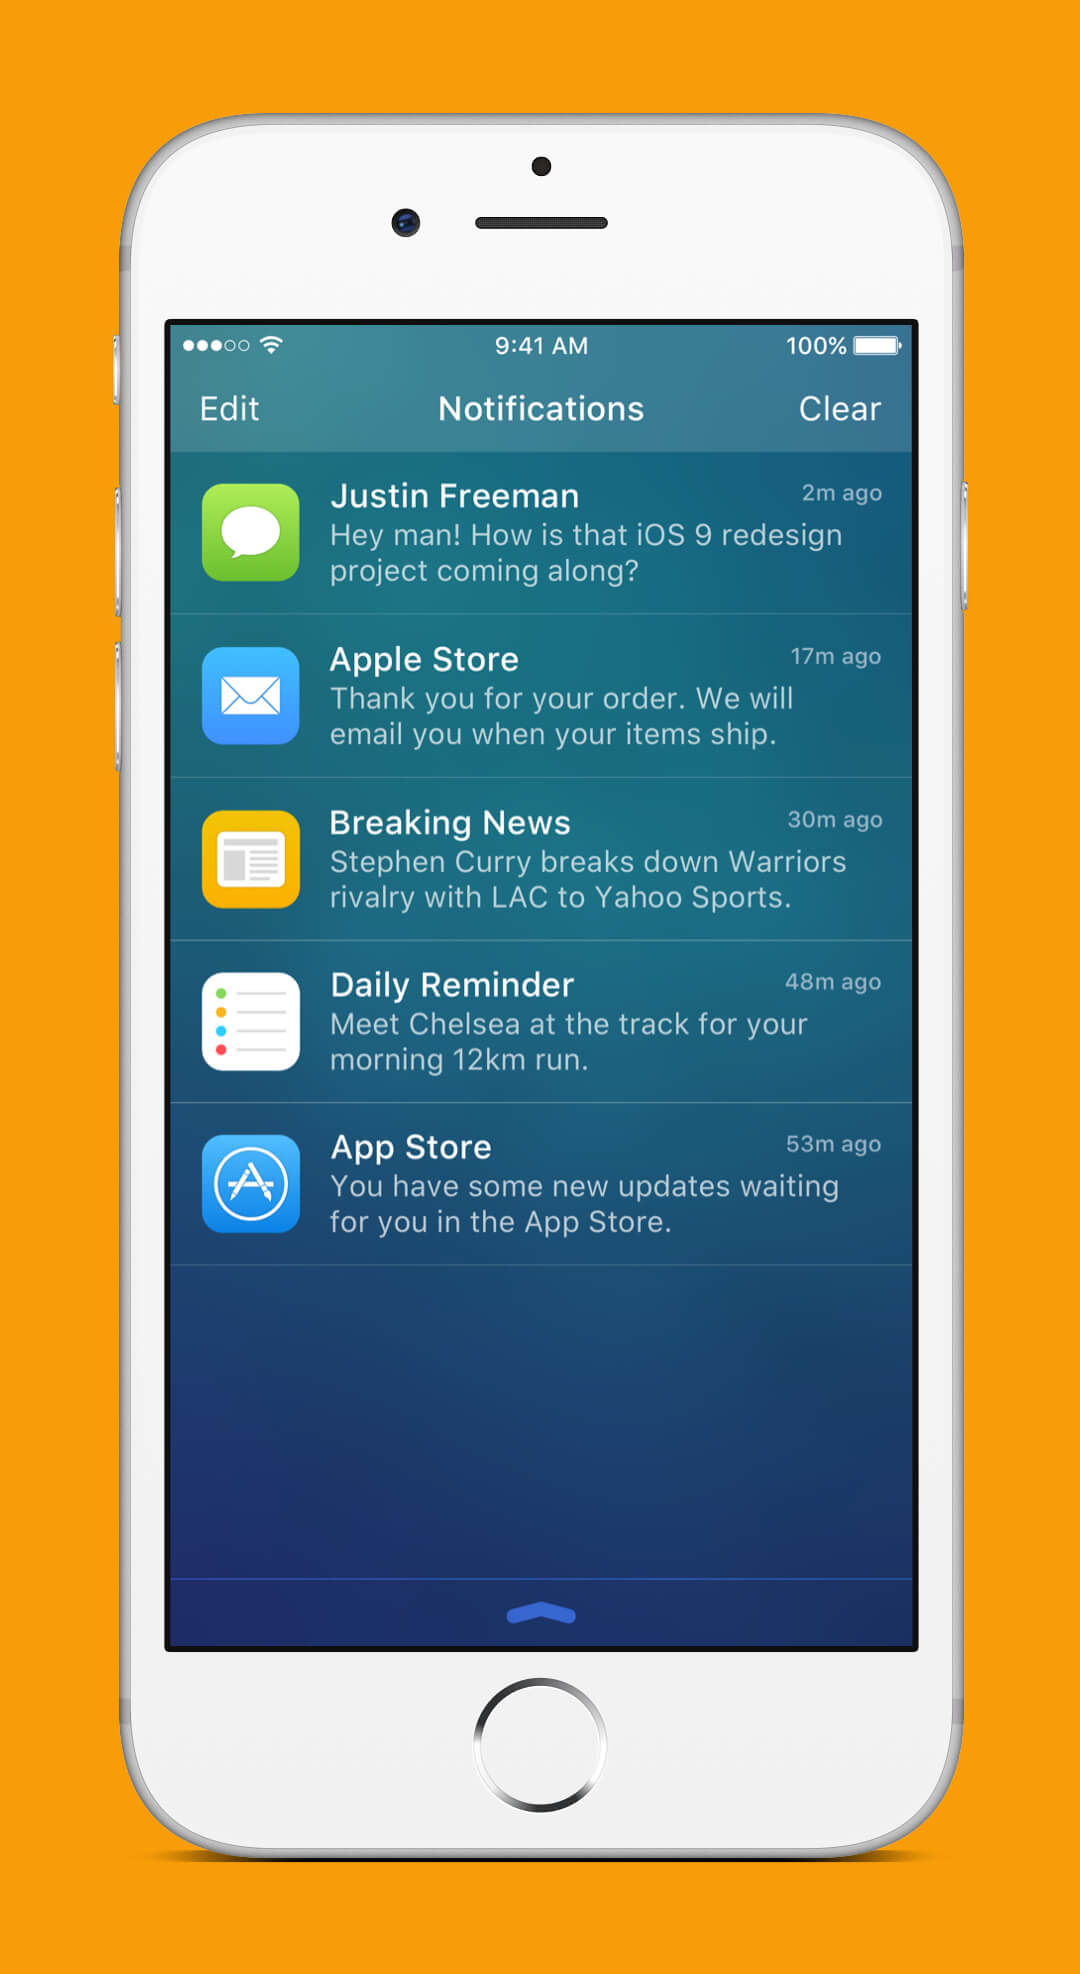 iOS 9 Redesign - Notifications Screen